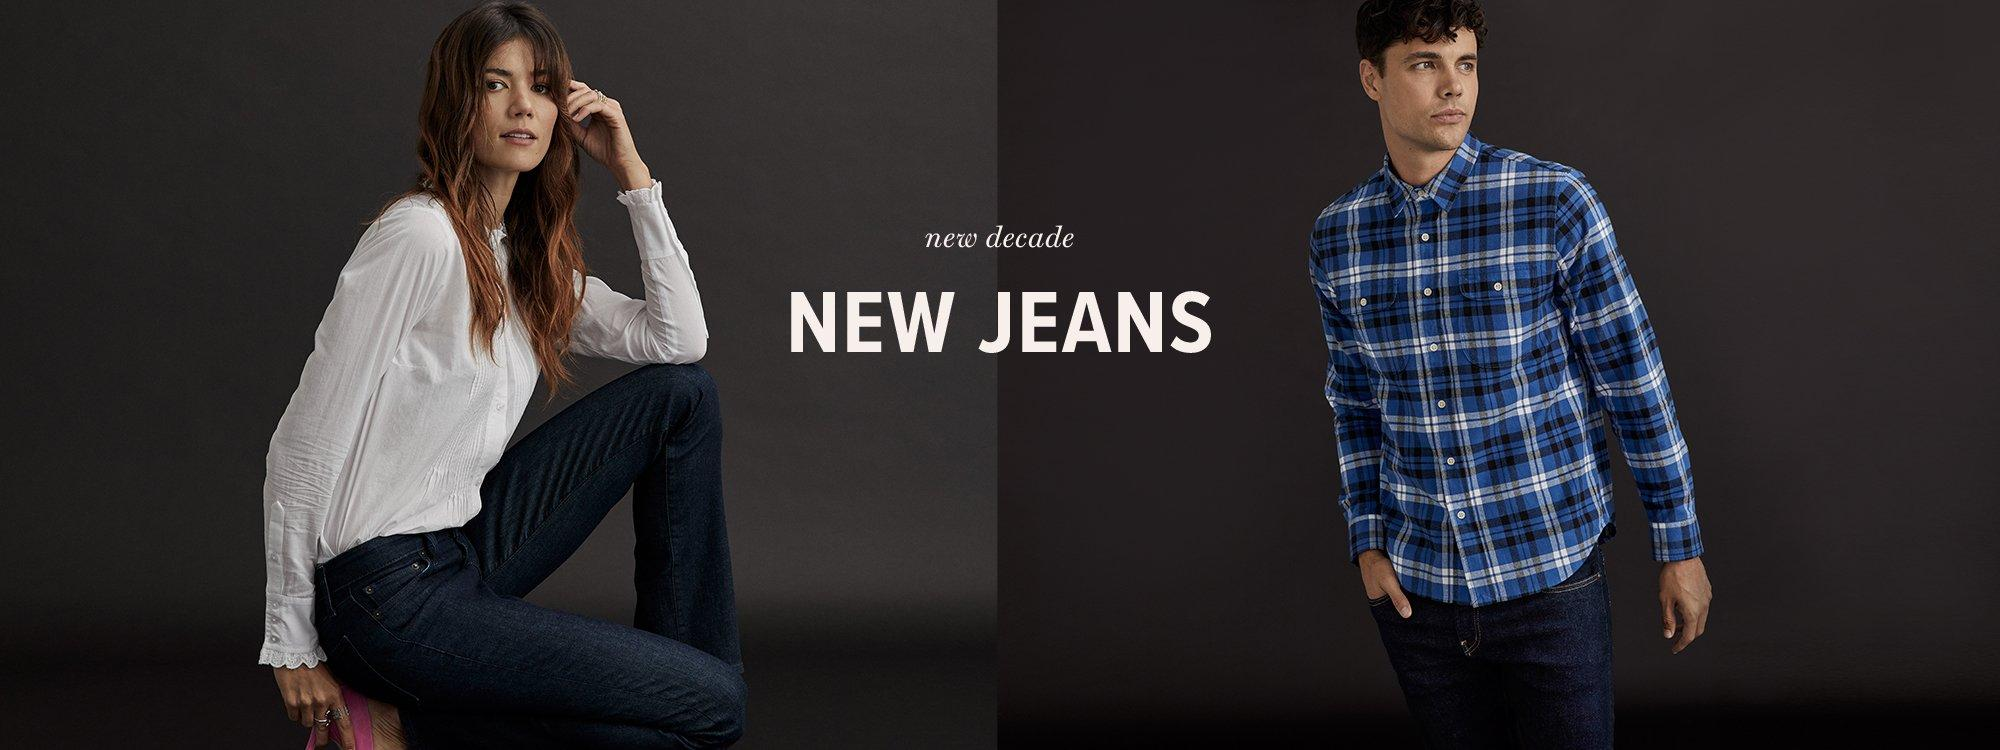 new decade new jeans